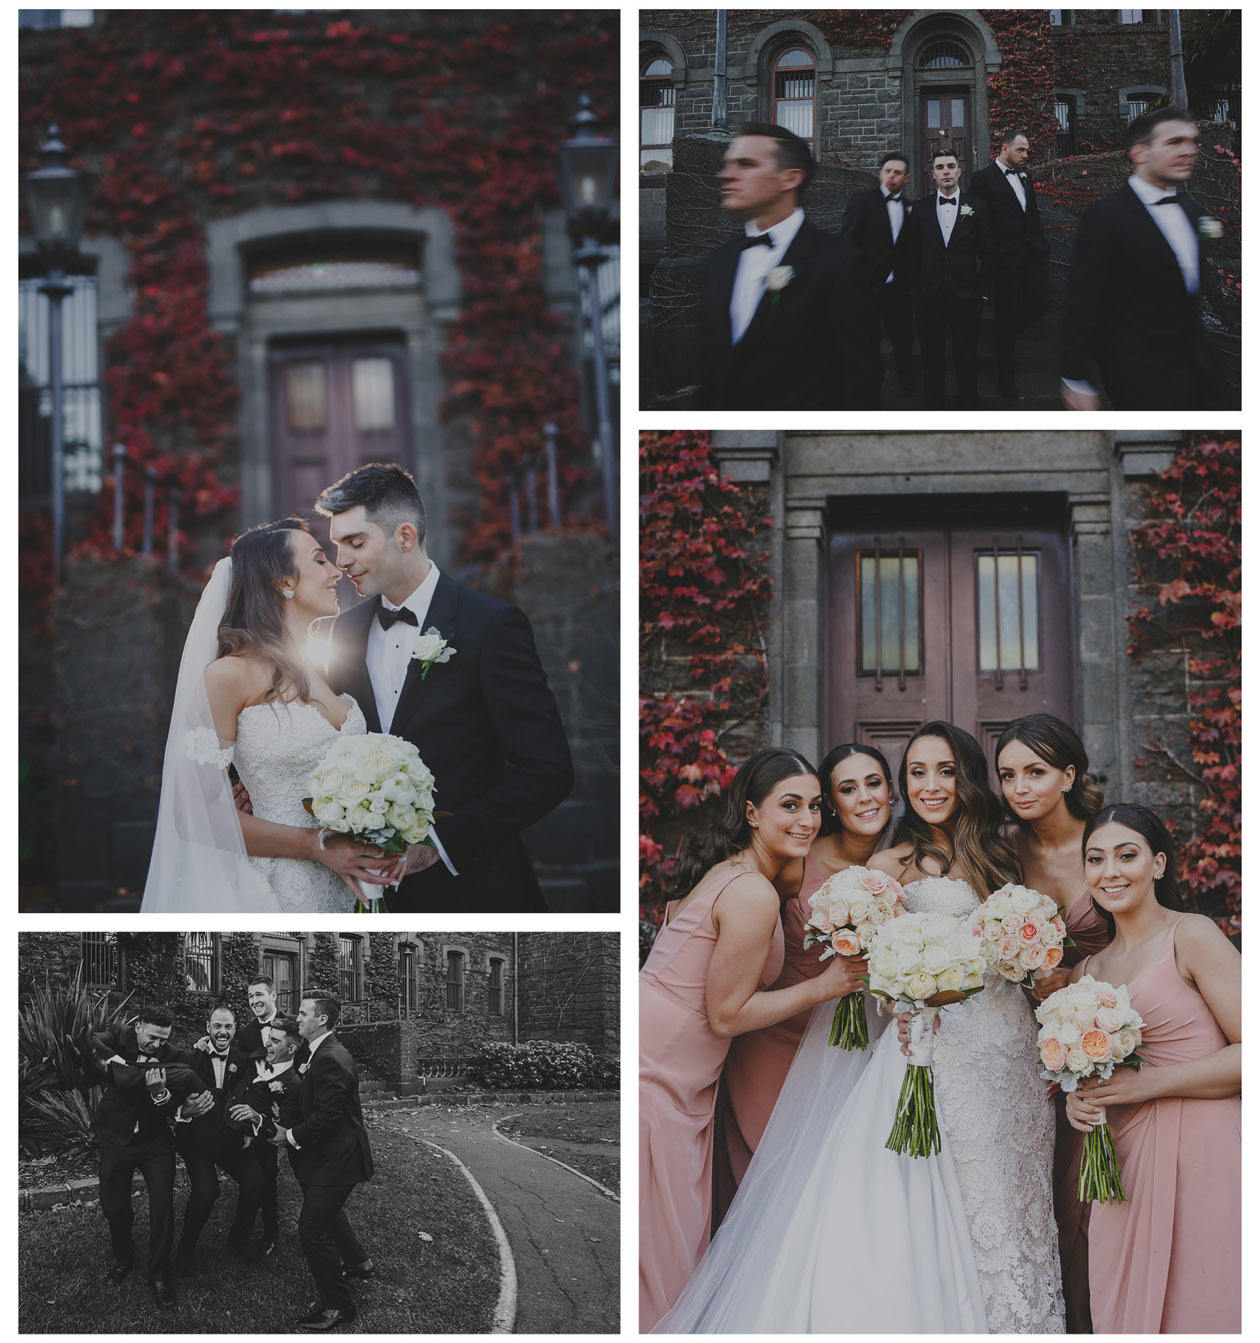 The groom and the bride went to south Melbourne Town hall and Victoria Army Barracks to take wedding photos before the wedding reception